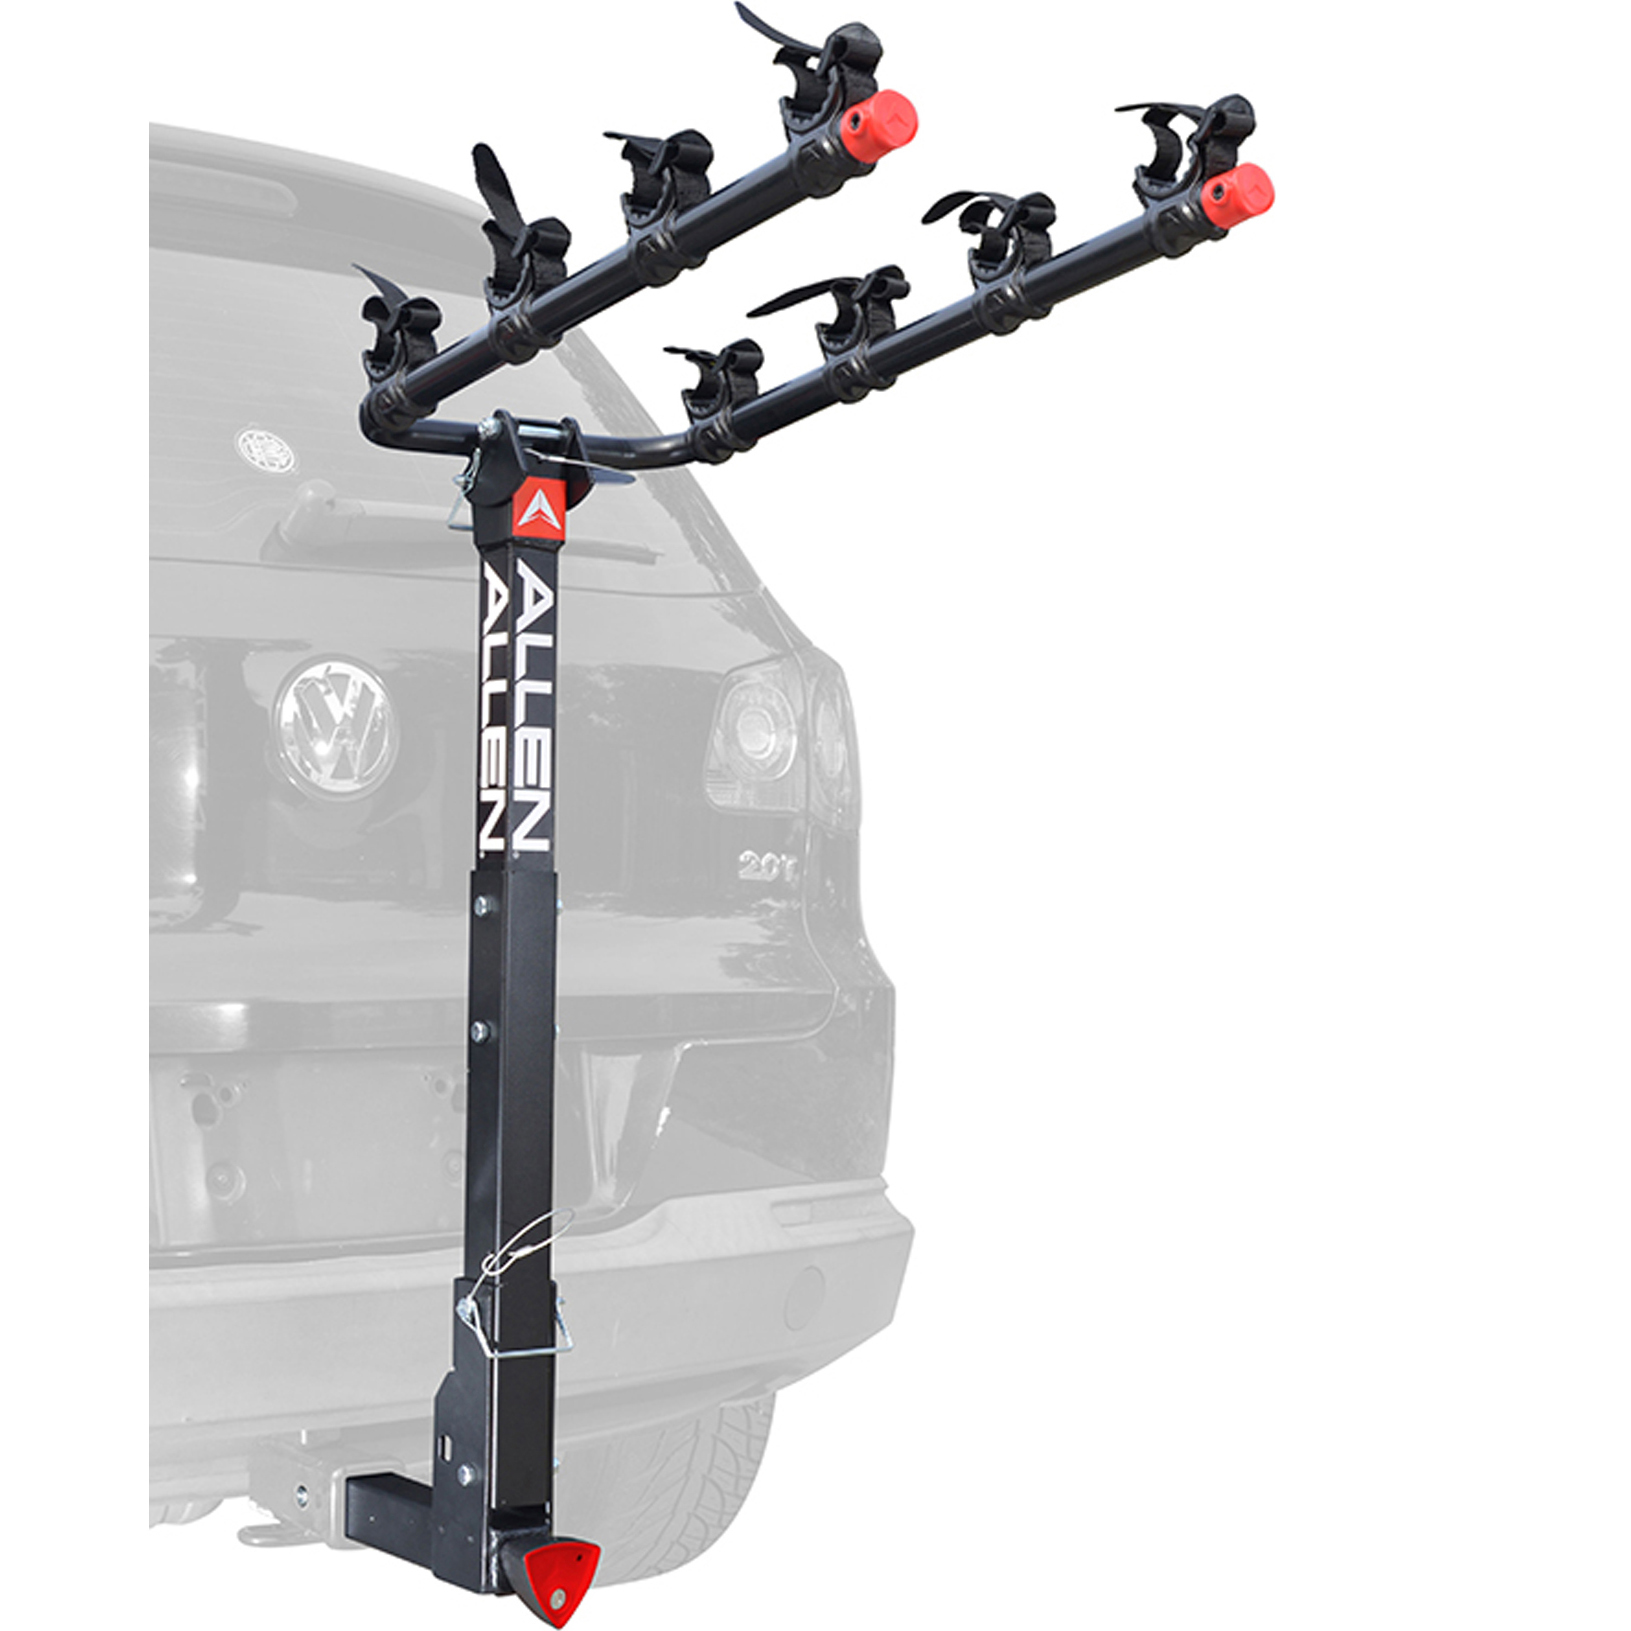 DELUXE QUICK INSTALL LOCKING 4-BIKE HITCH